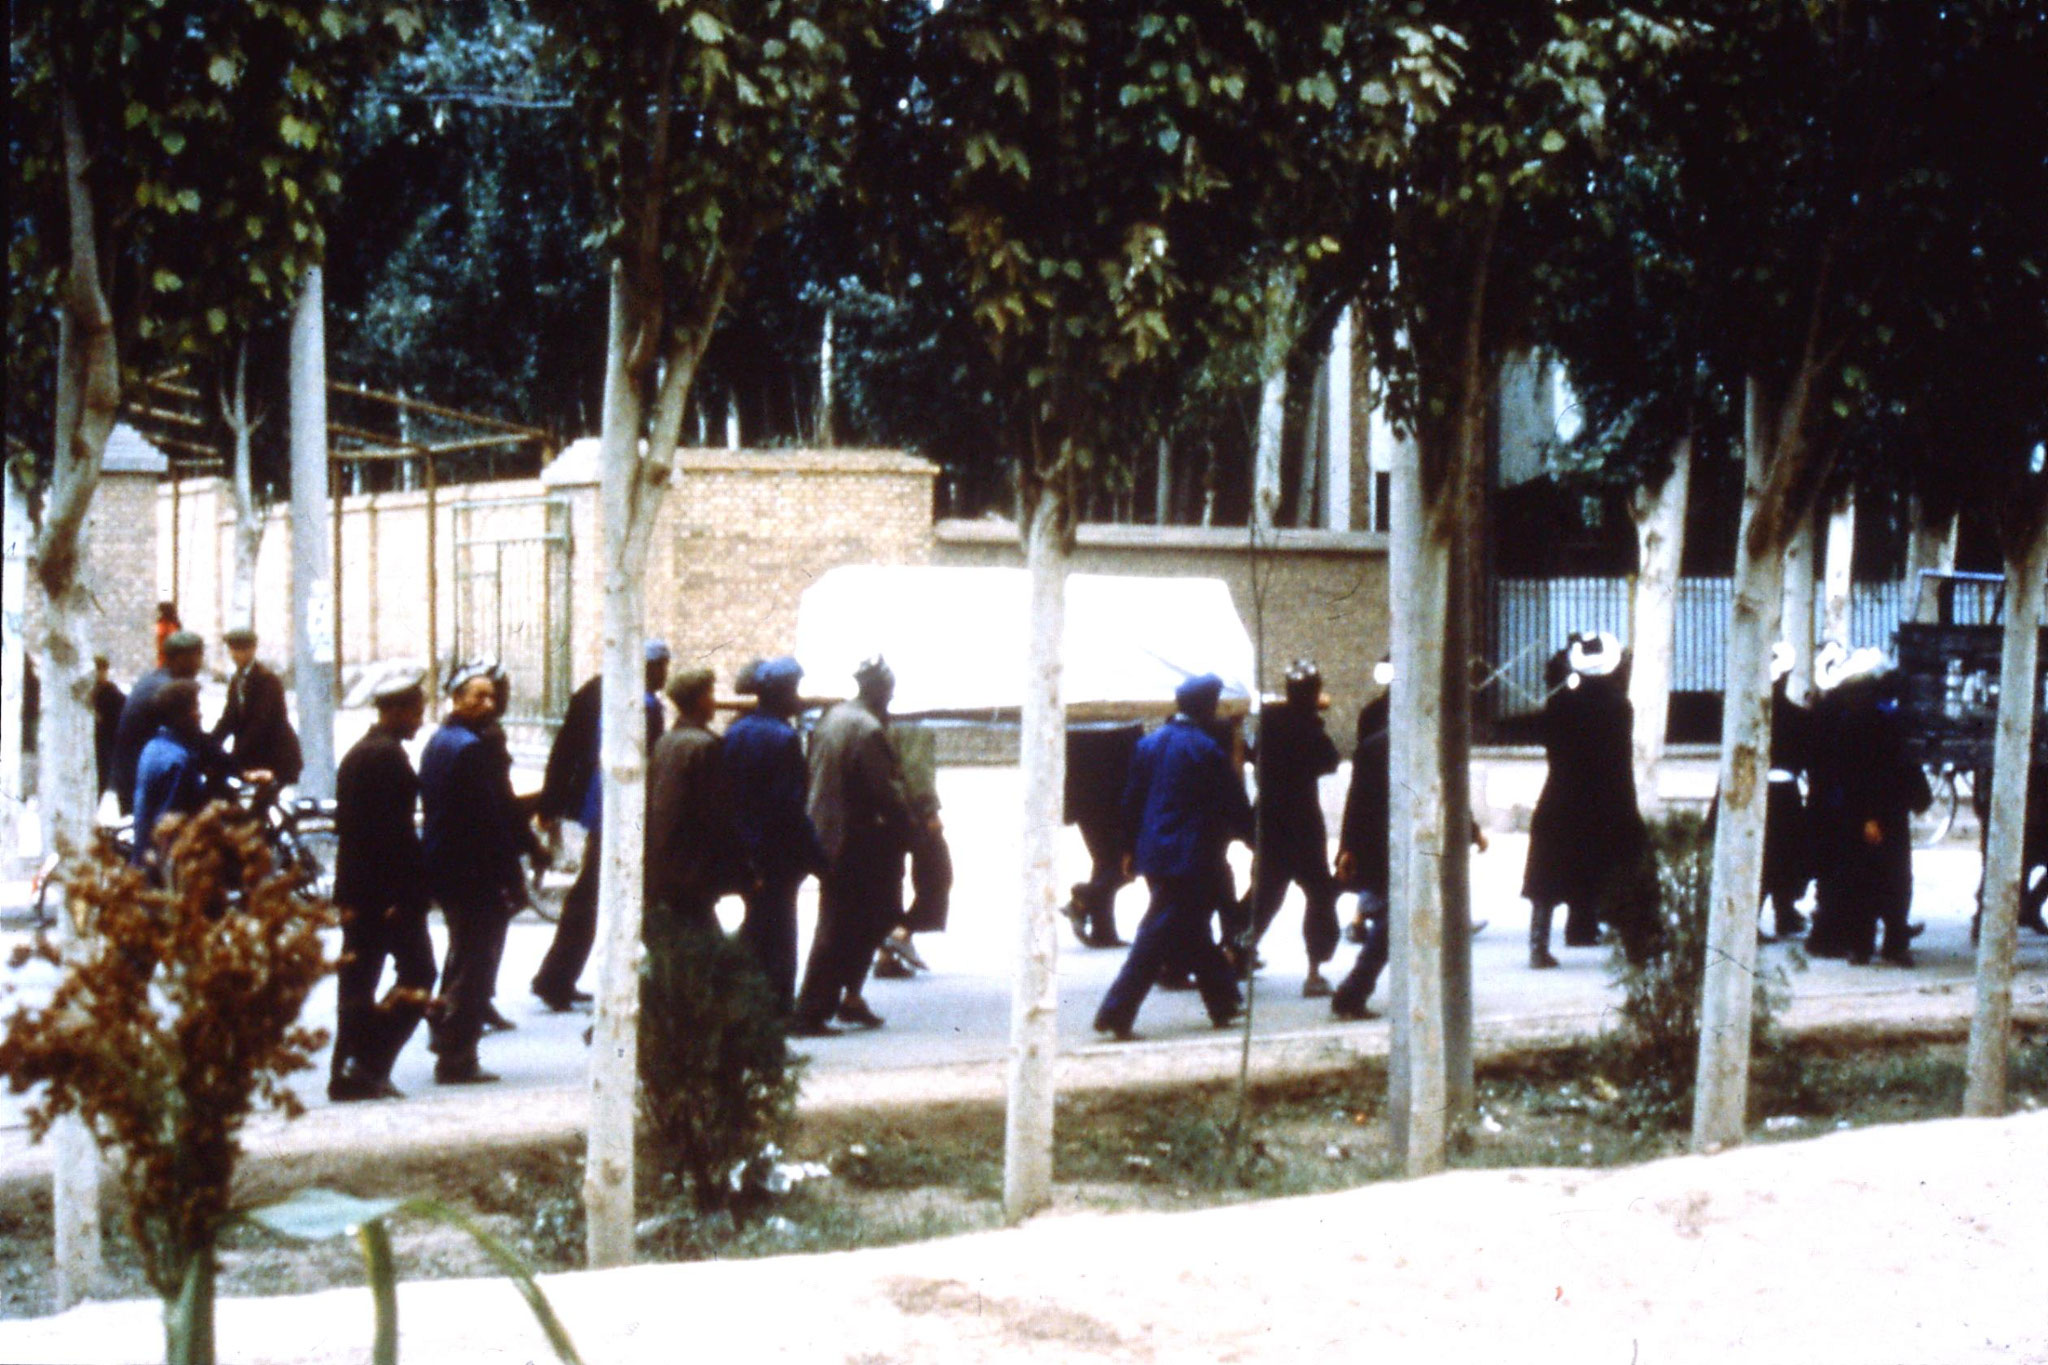 10/9/1989:12: Kasgar funeral cortege outside Oasis cafe